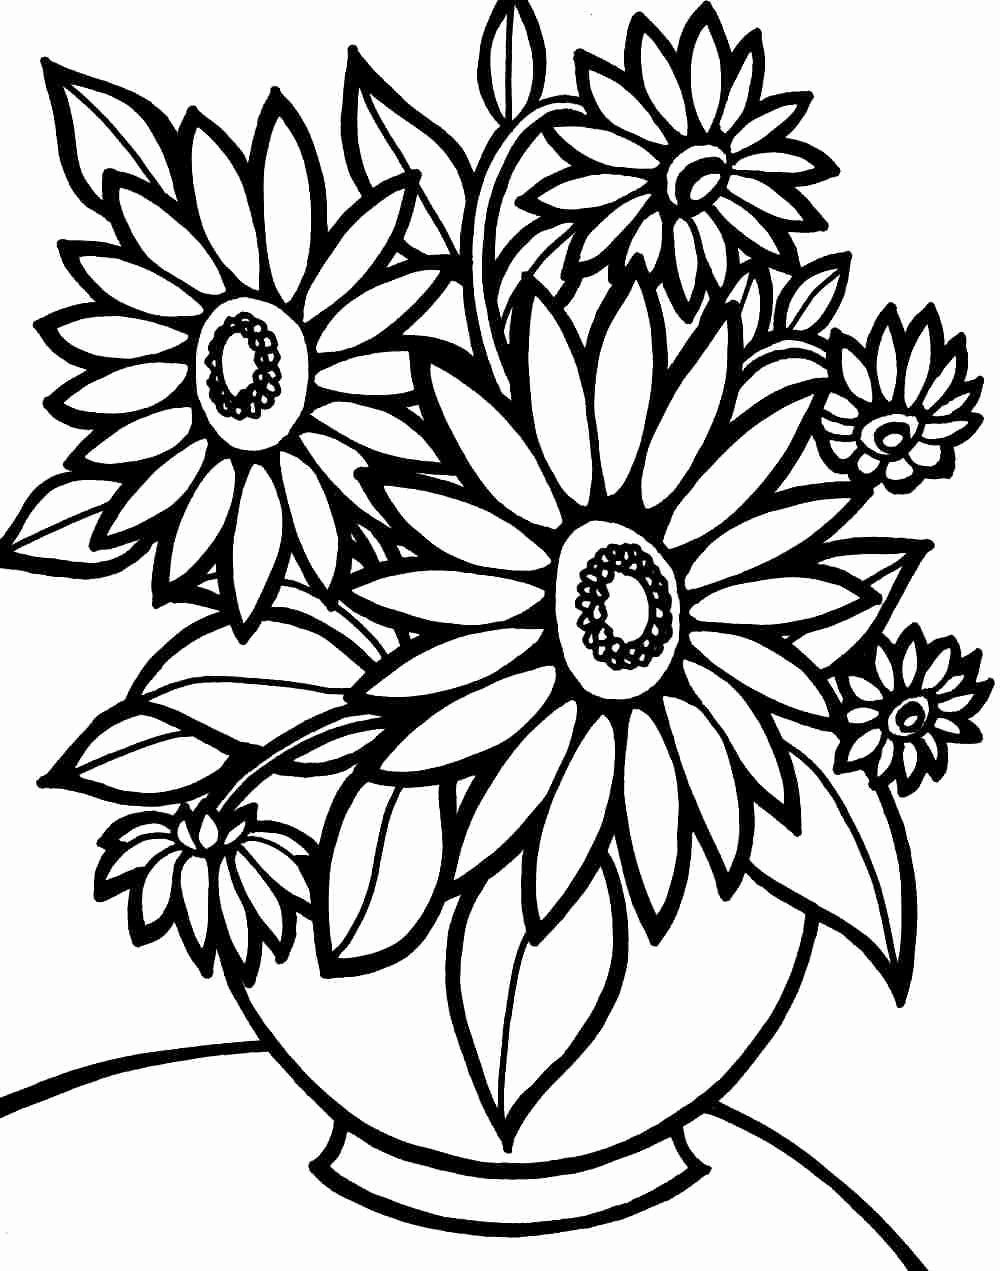 Bouquet Of Flowers Coloring Page New Colouring Pages Bouquet